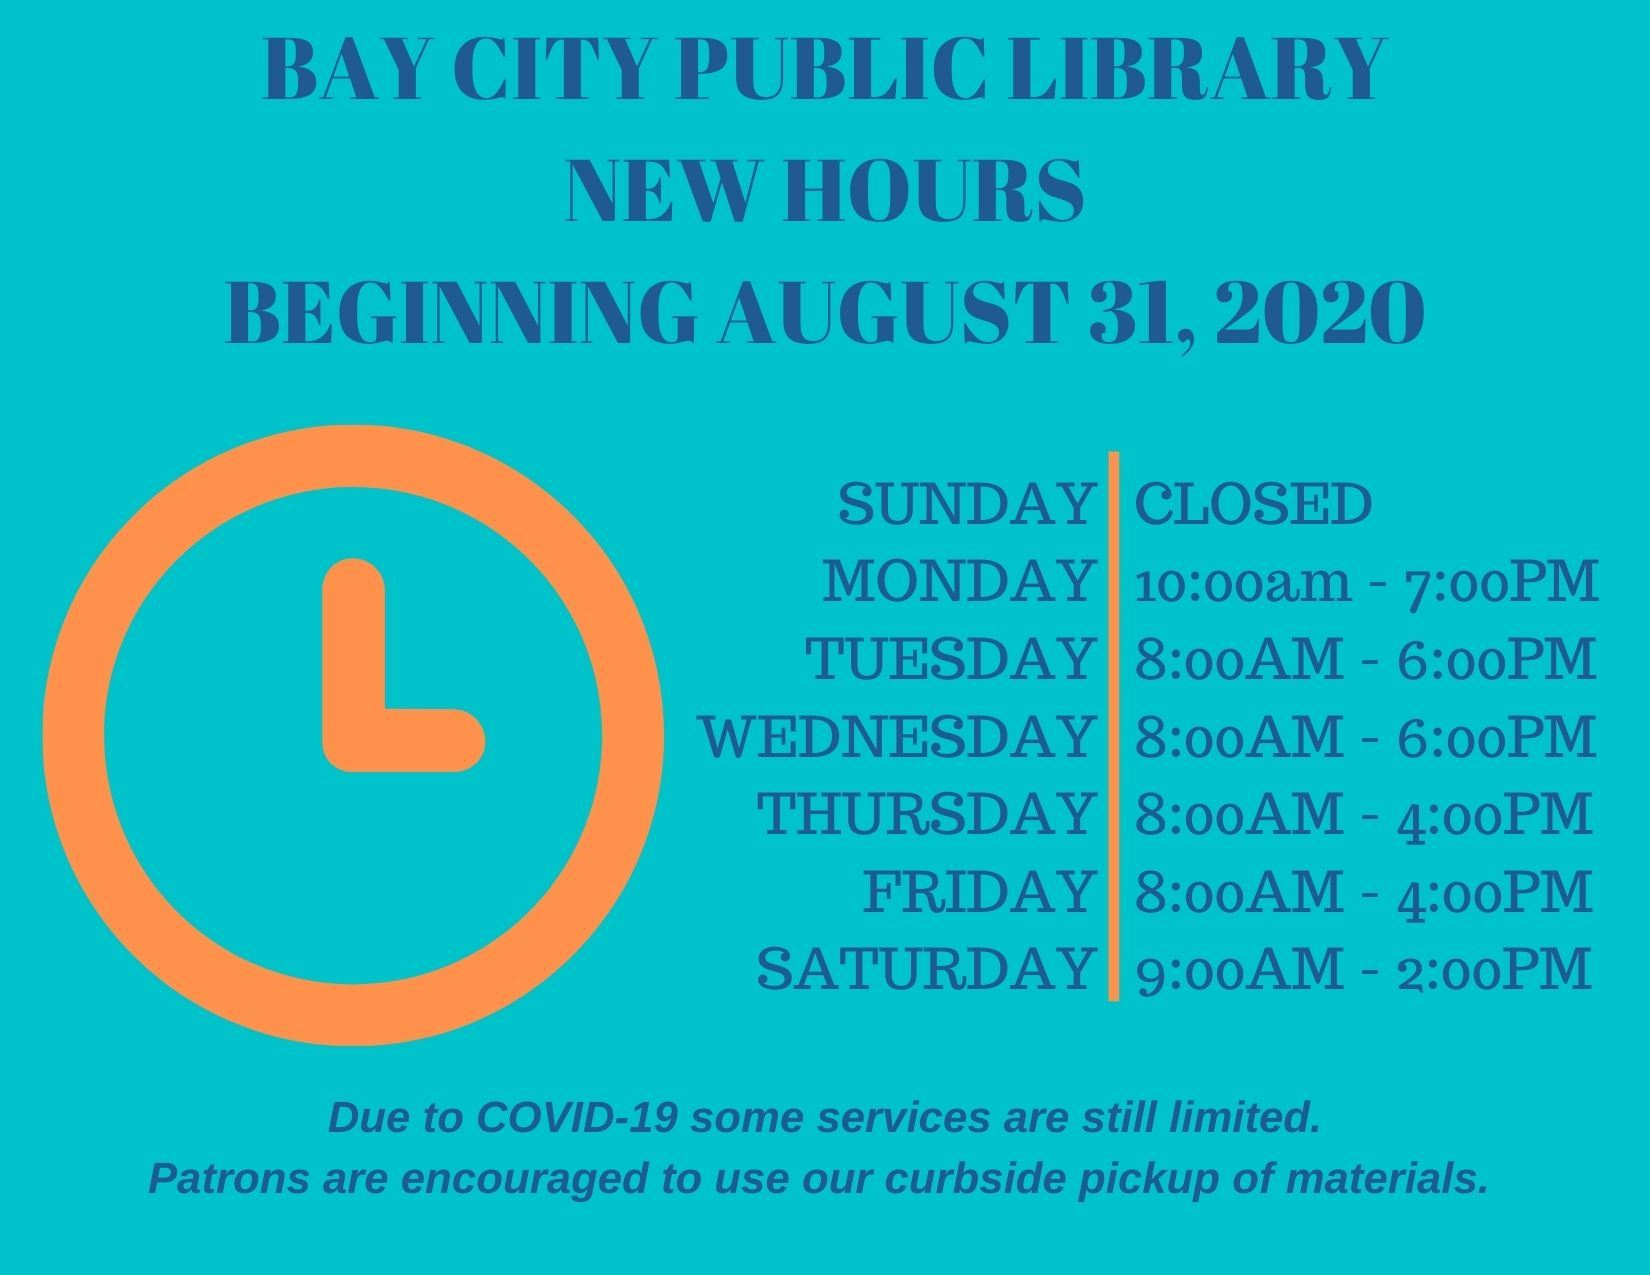 new hours for bay city public library beginning august 31, 2020